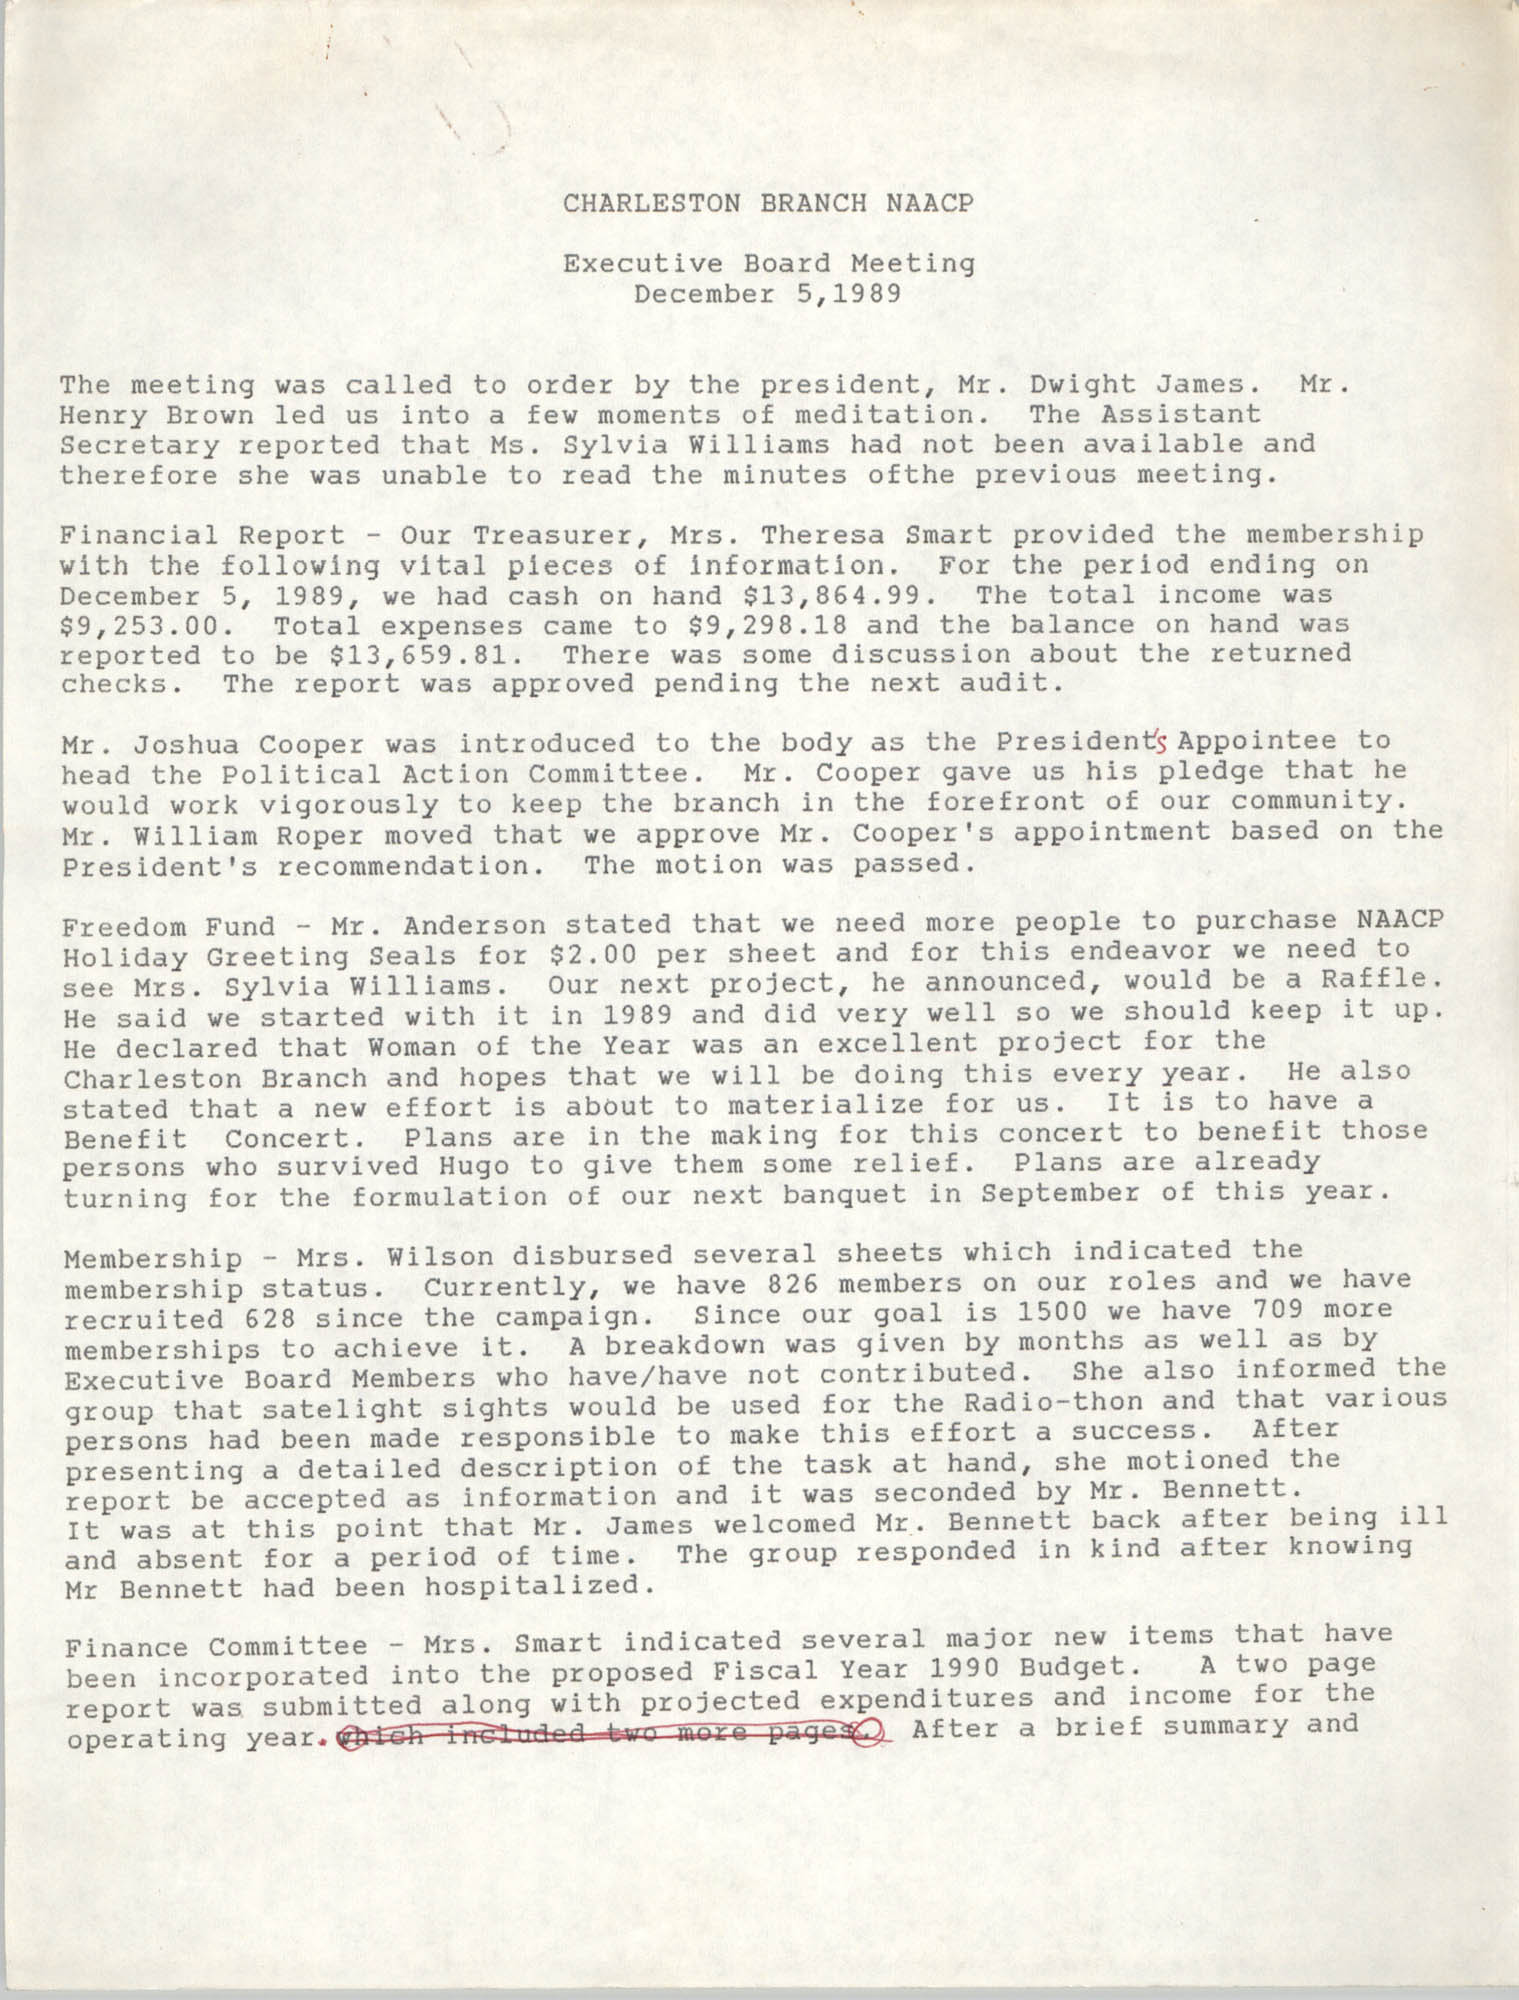 Minutes, Charleston Branch of the NAACP Executive Board Meeting, December 5, 1989